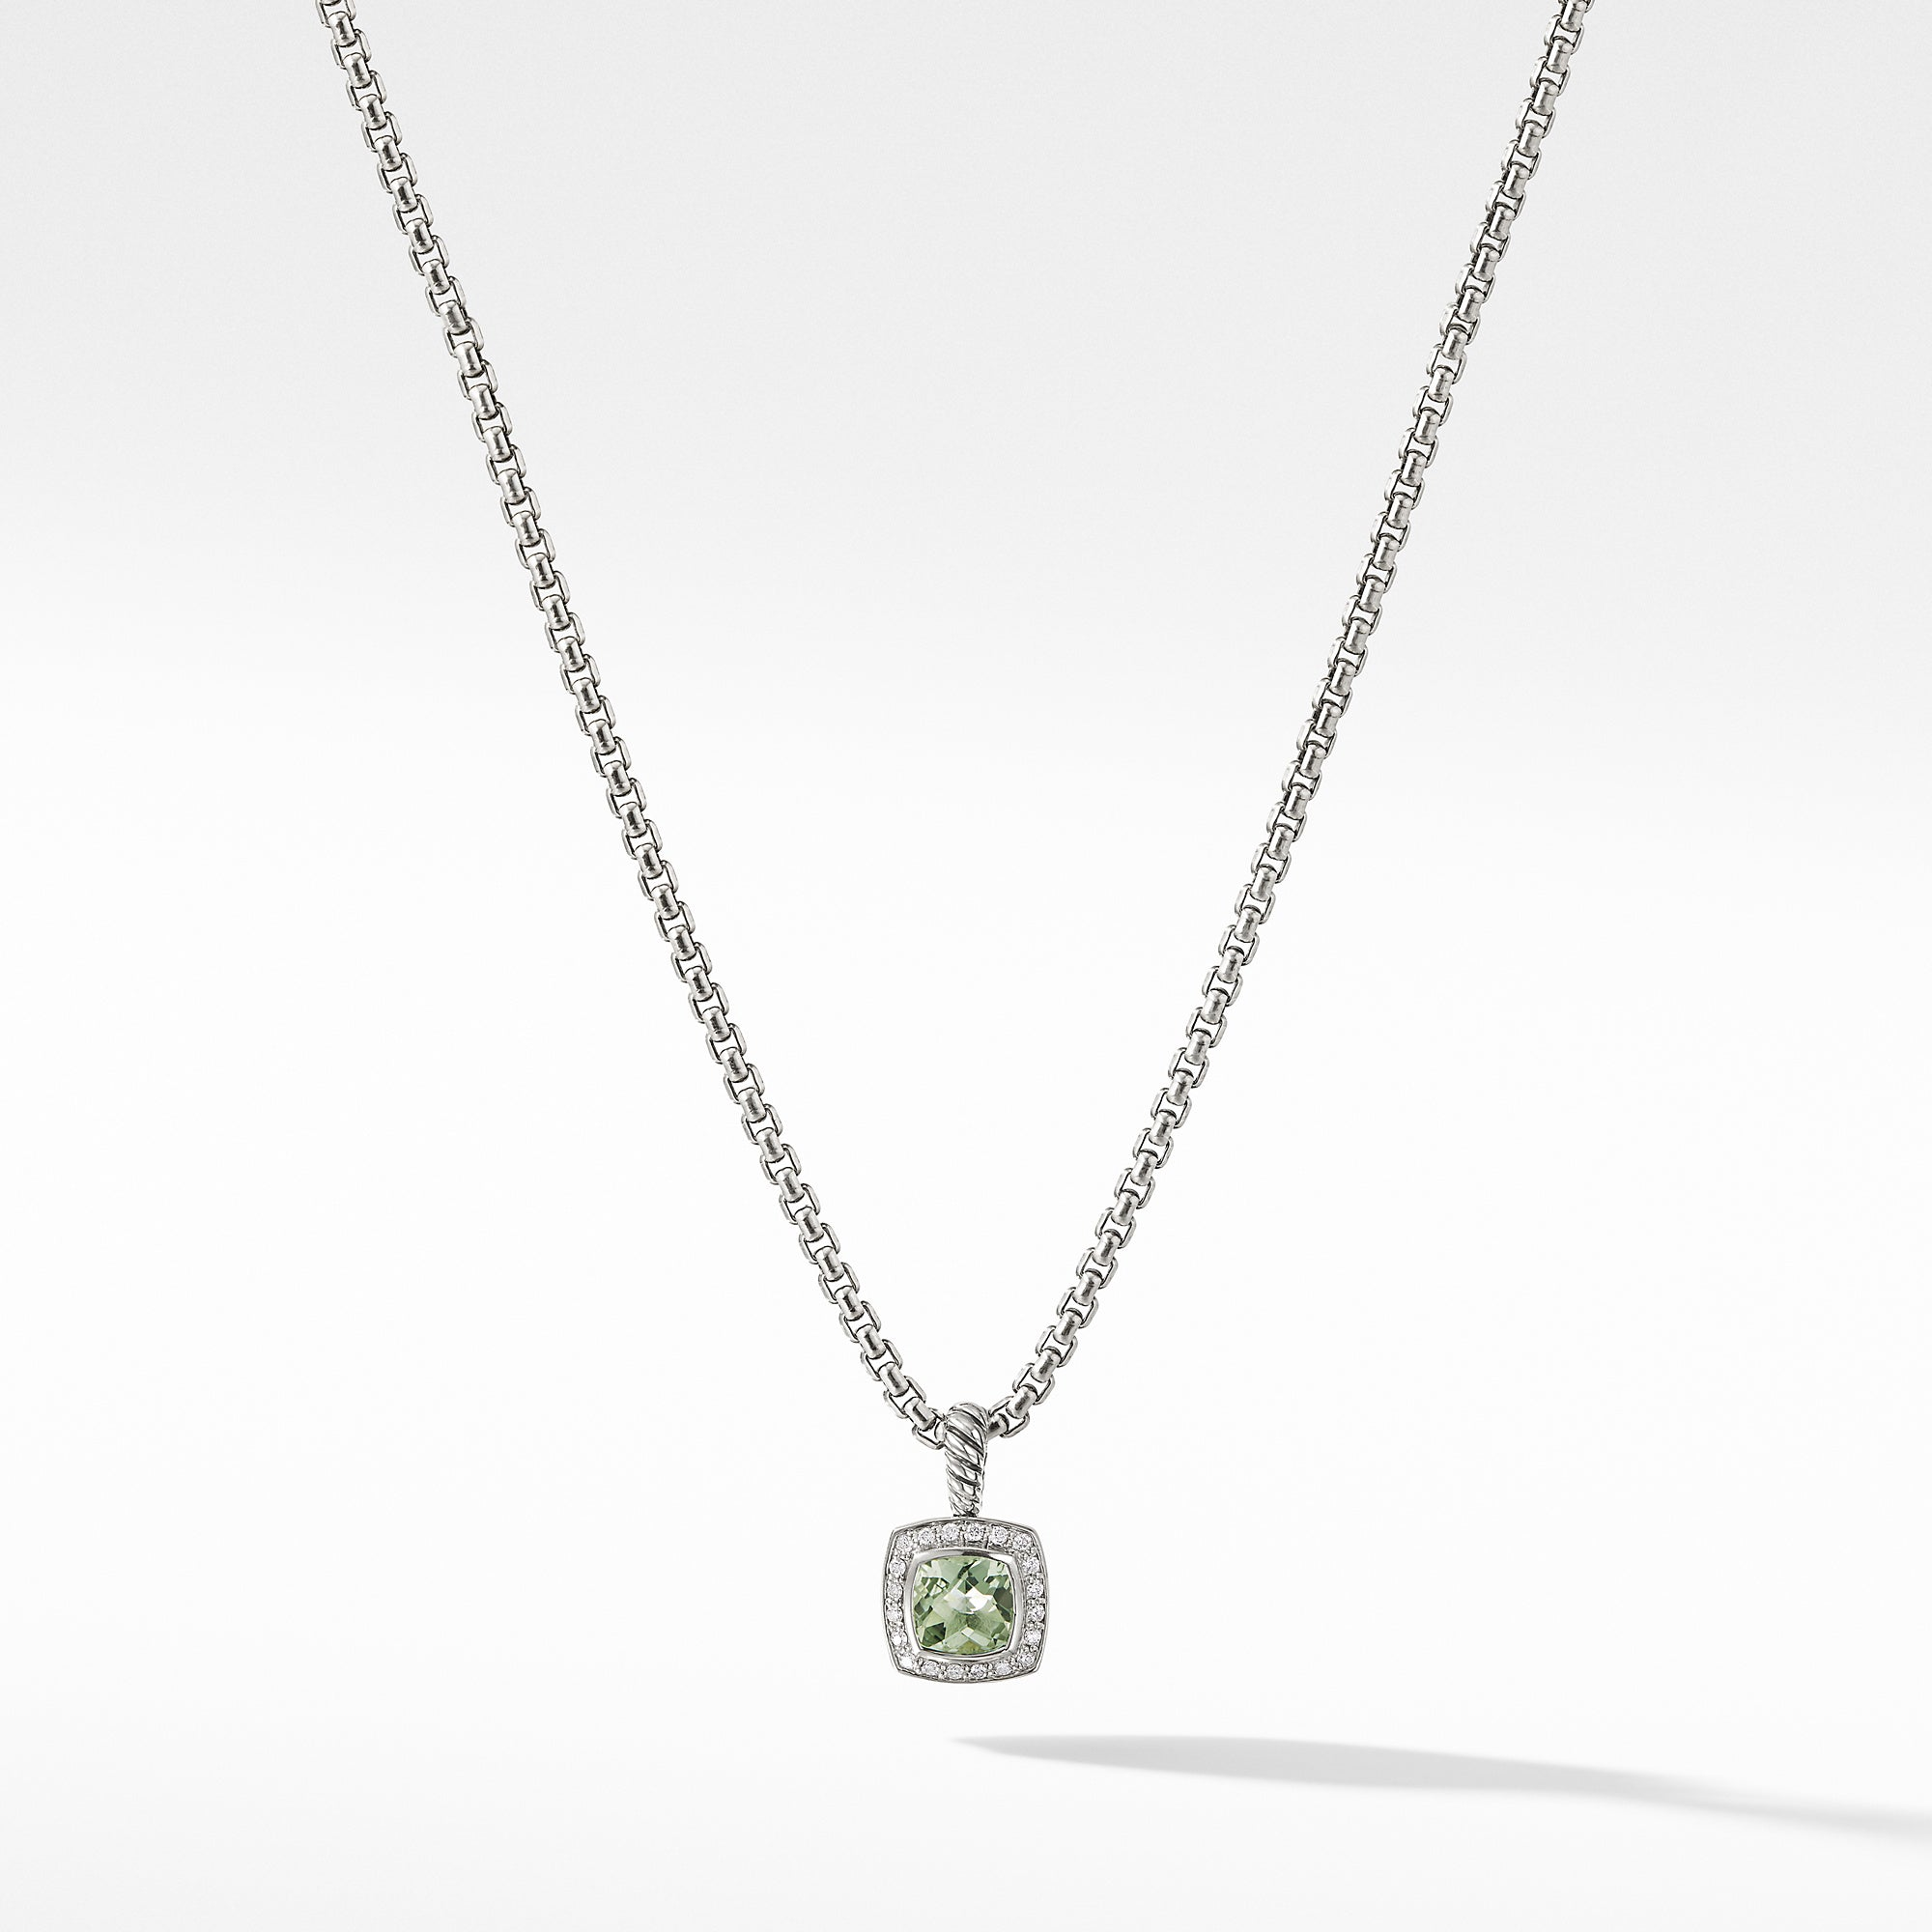 Pendant Necklace with Prasiolite and Diamonds